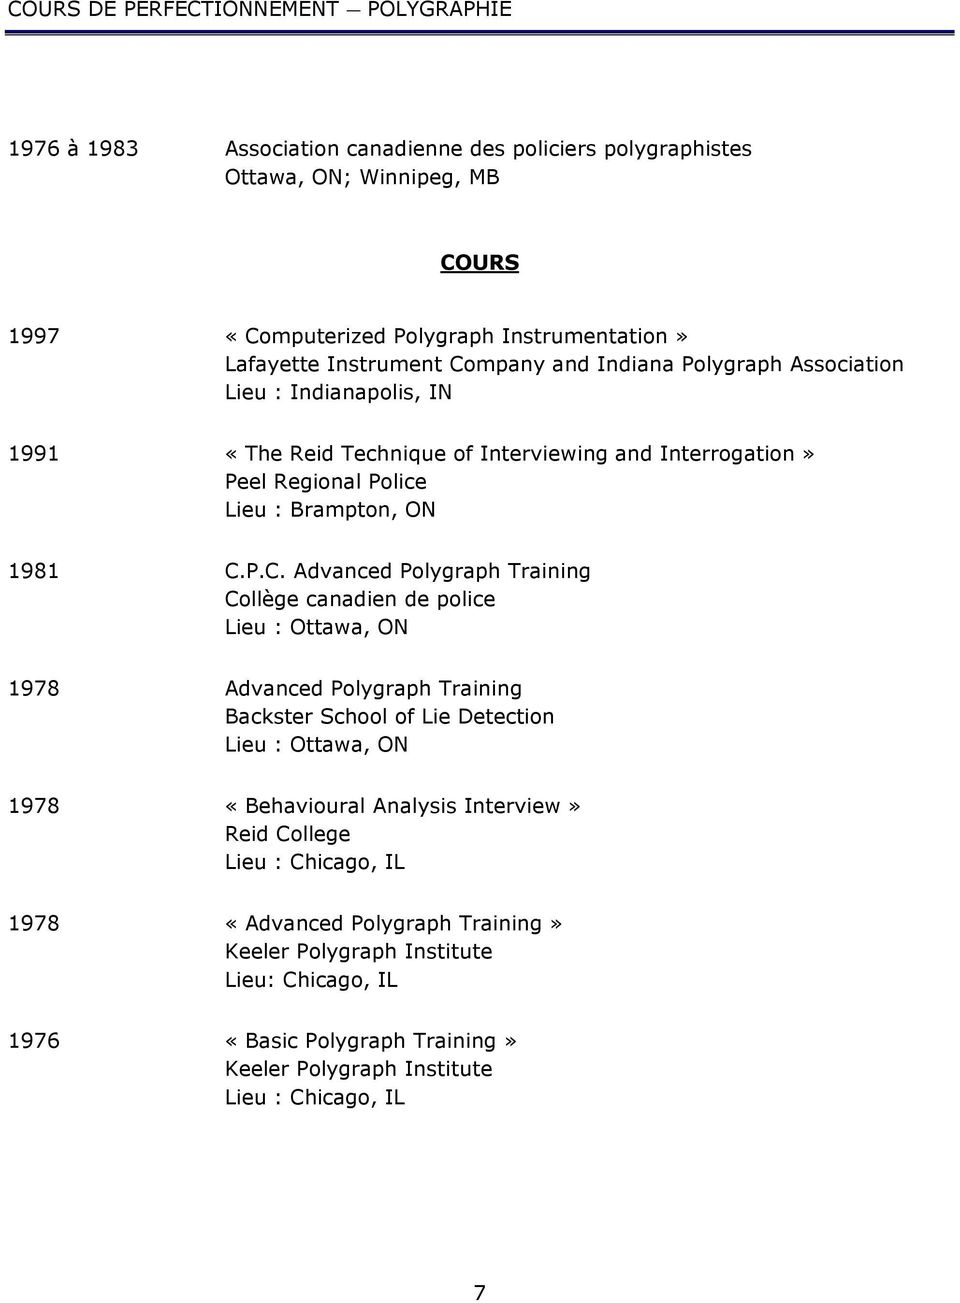 mpany and Indiana Polygraph Association Lieu : Indianapolis, IN 1991 â The Reid Technique of Interviewing and Interrogation ä Peel Regional Police Lieu : Brampton, ON 1981 C.